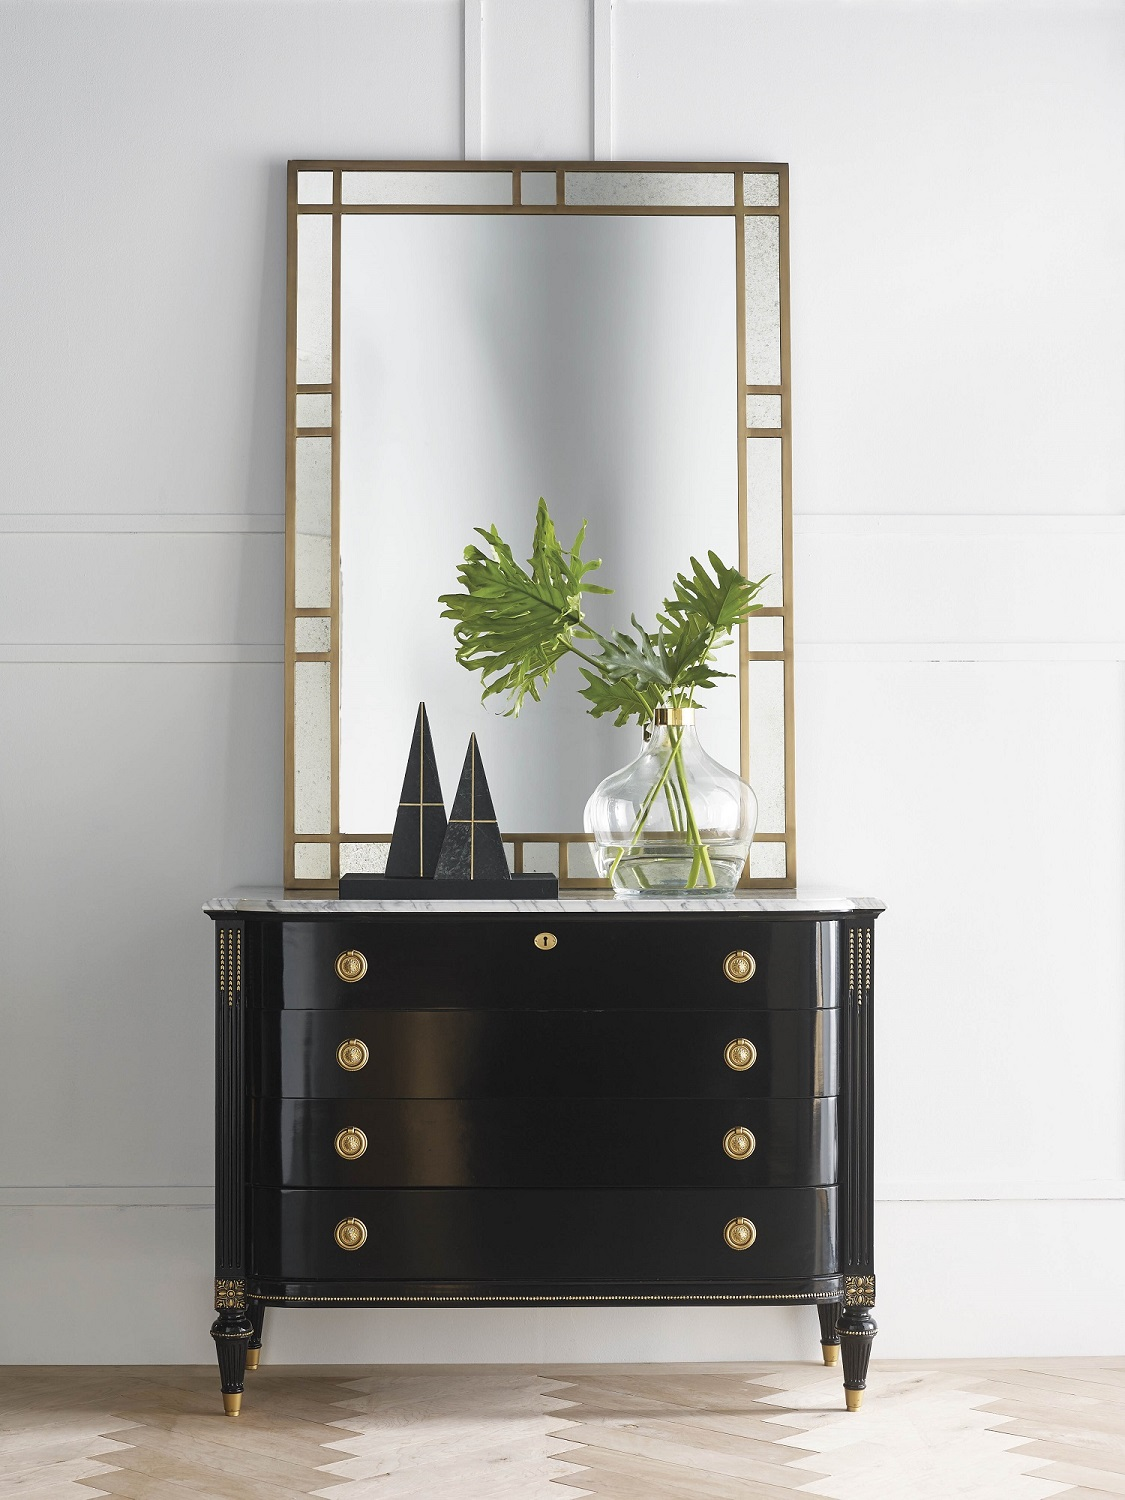 Simplify your accessories and let your favorite pieces speak for themselves. Shown: Frontgate's Regency 4-Drawer Bow Front Chest pays homage to a neoclassical antique. The hand-painted gold beading catches the eye almost as quickly as do the bow-shaped drawers, hand carved corners, and veined Carrara marble top. Photo: Frontgate.